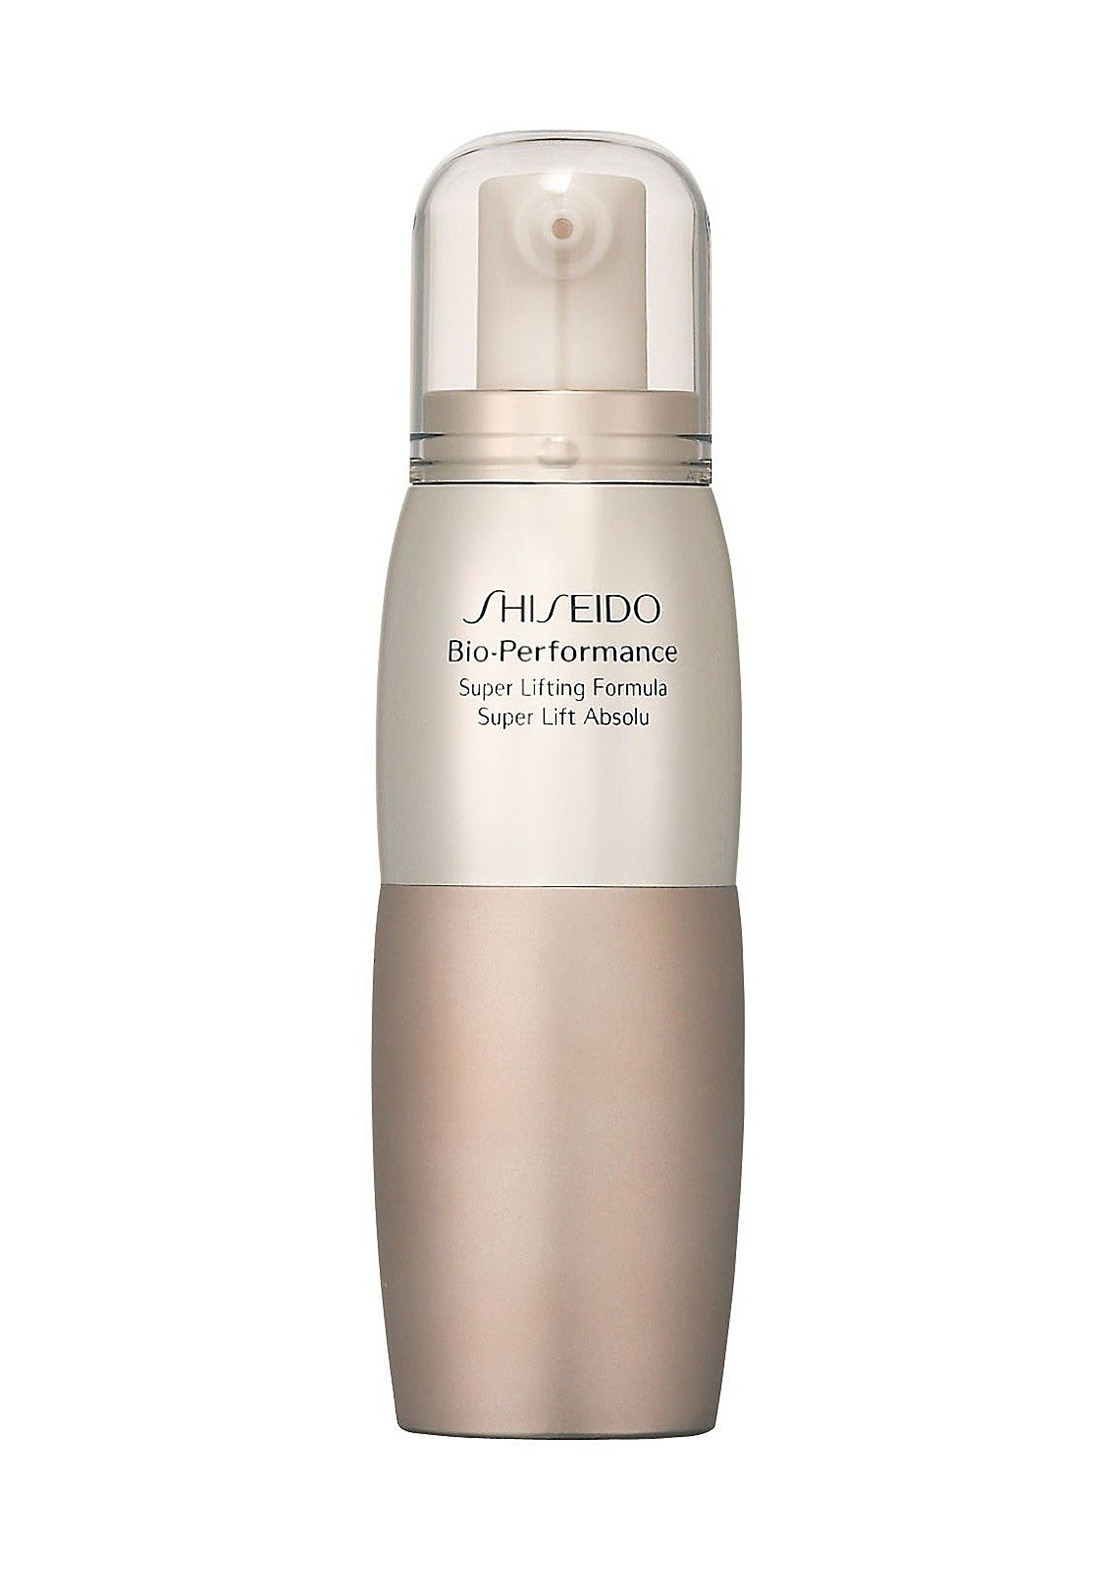 Shiseido Bio-Performance Super Lifting Formula Cream (30ml)